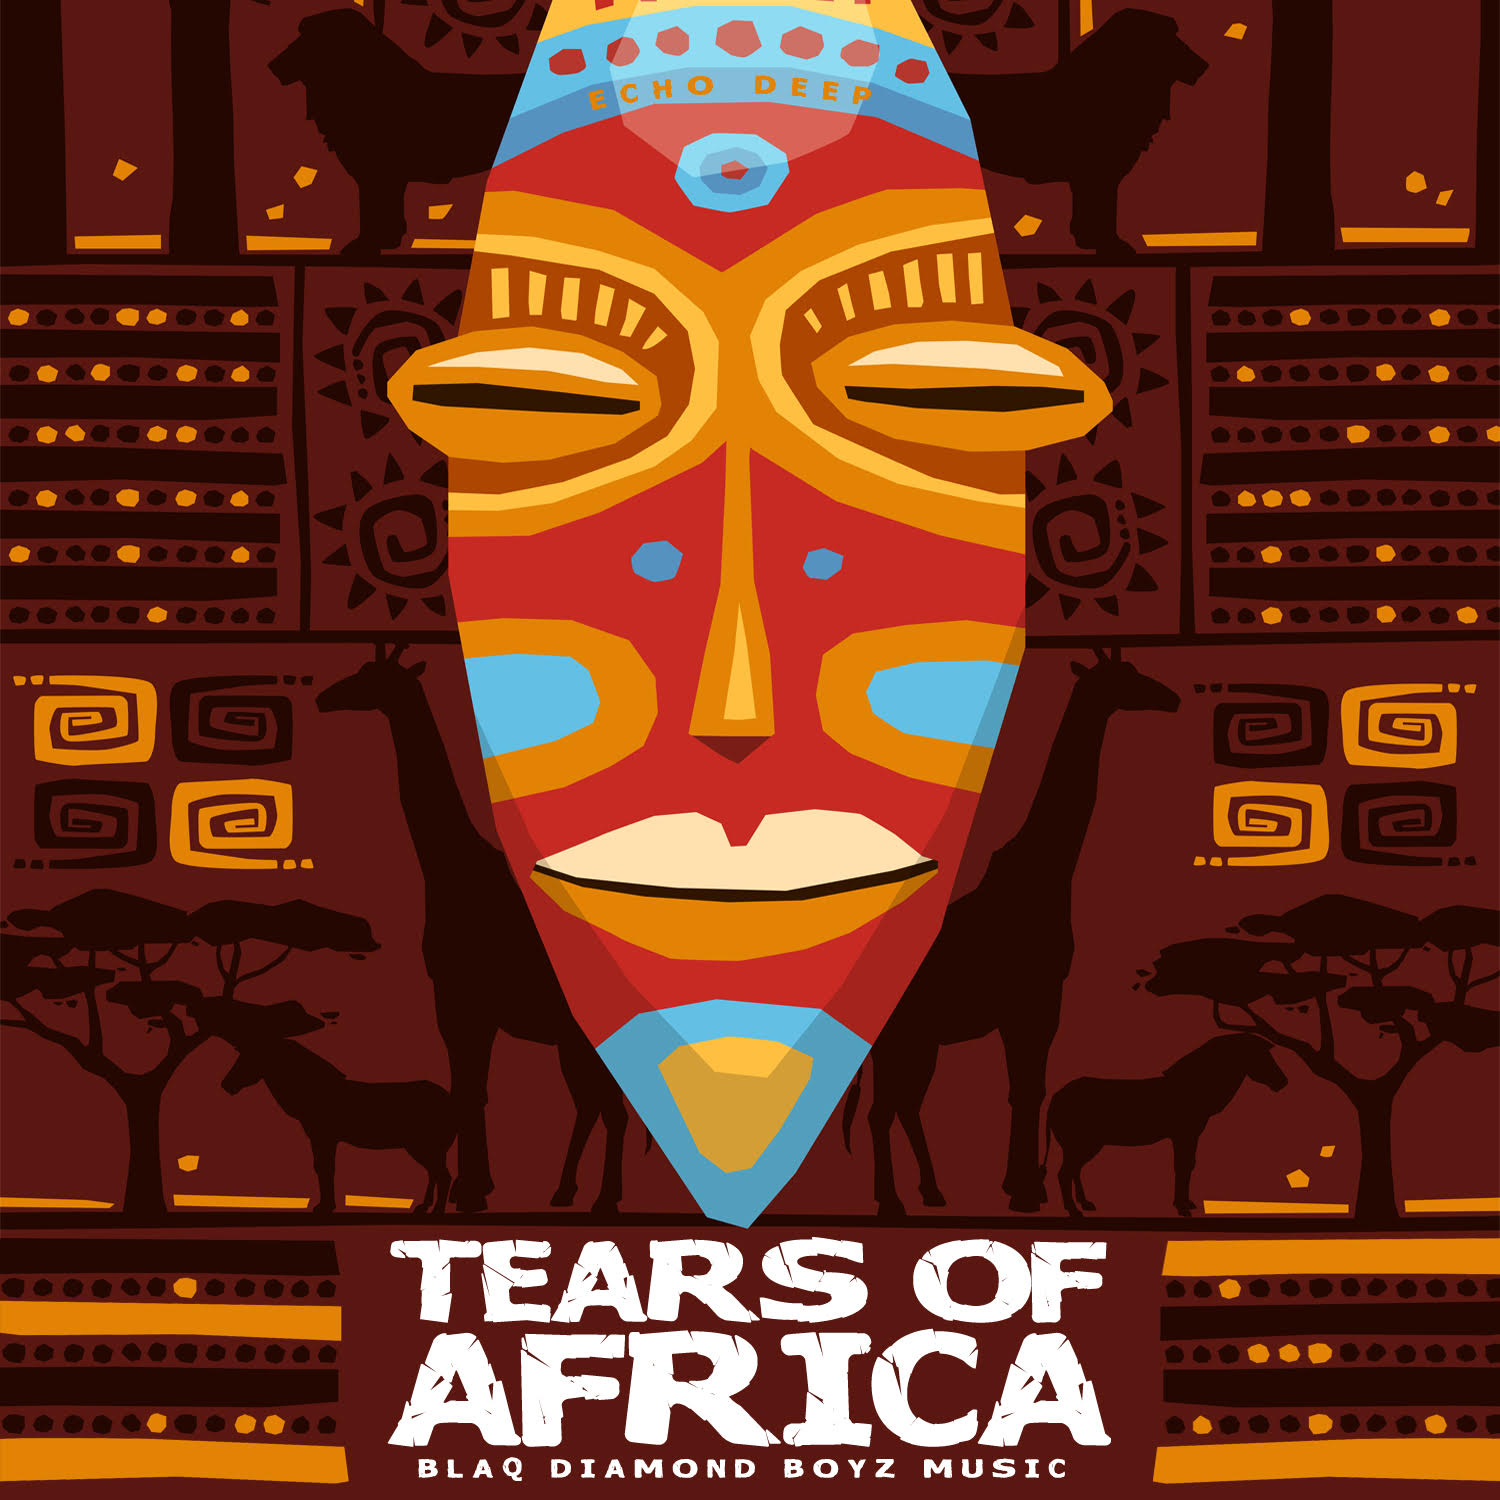 Music Showcase: Echo Deep – Tears Of Africa